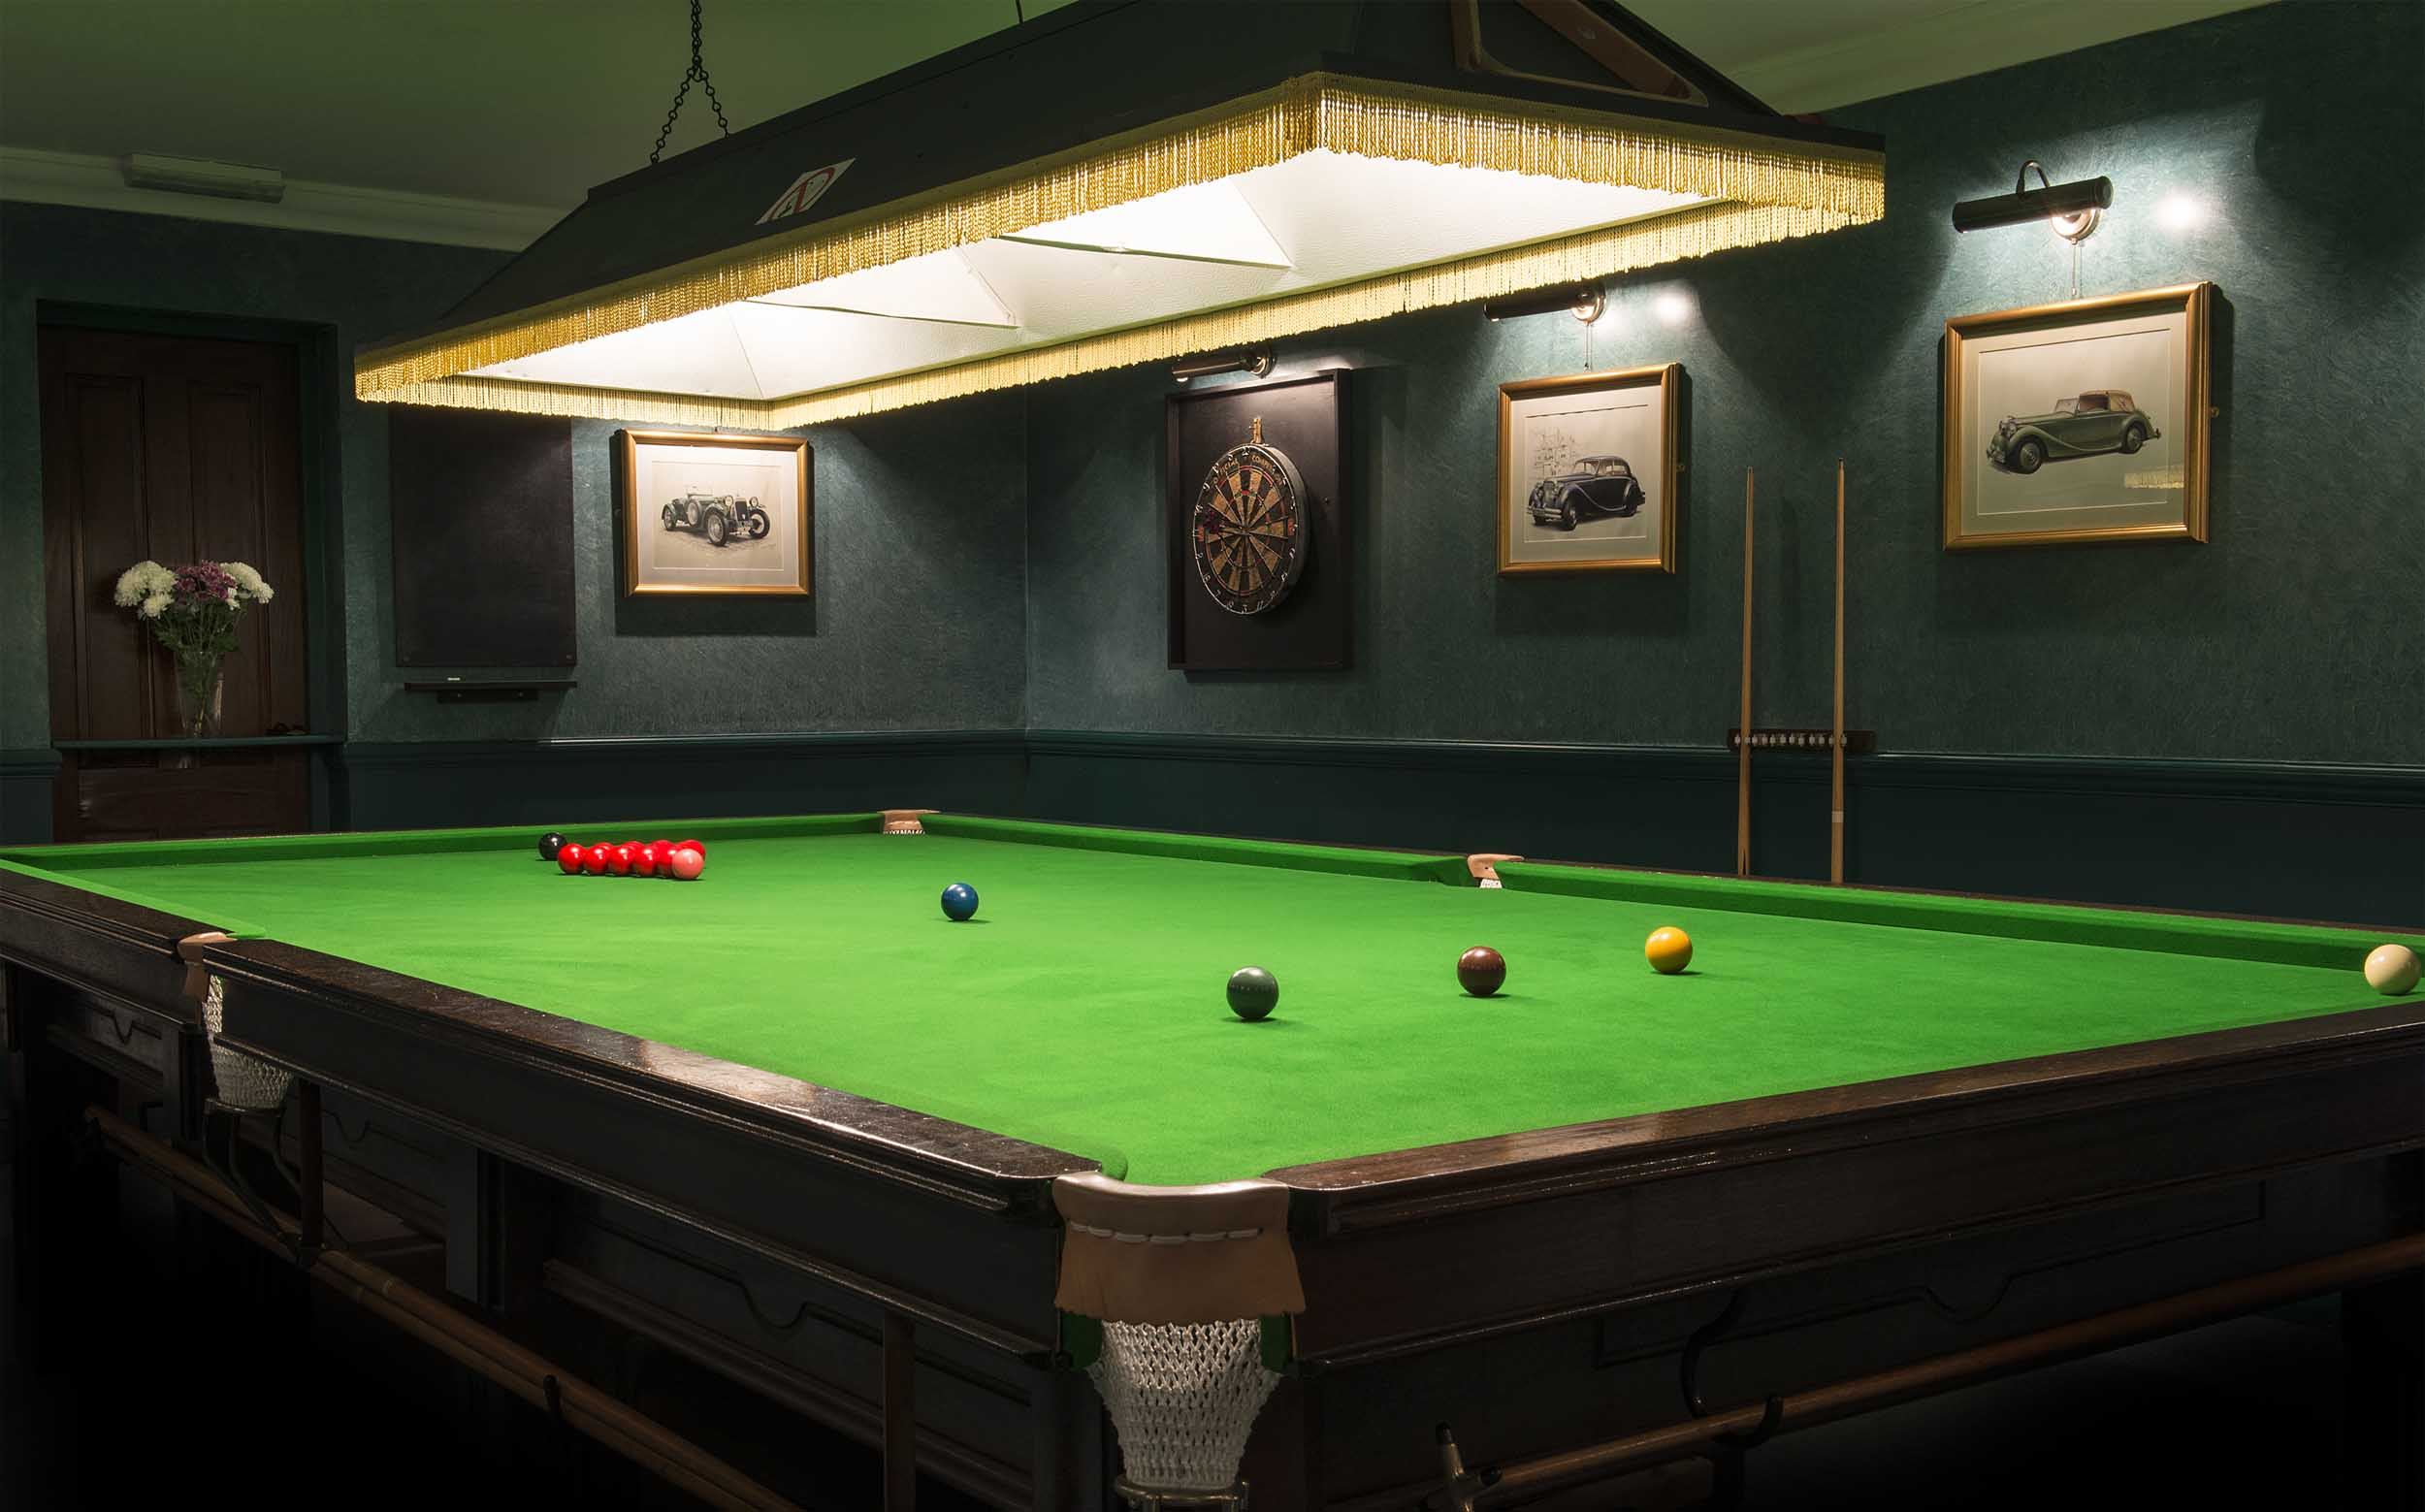 Spanhoe Snooker Room